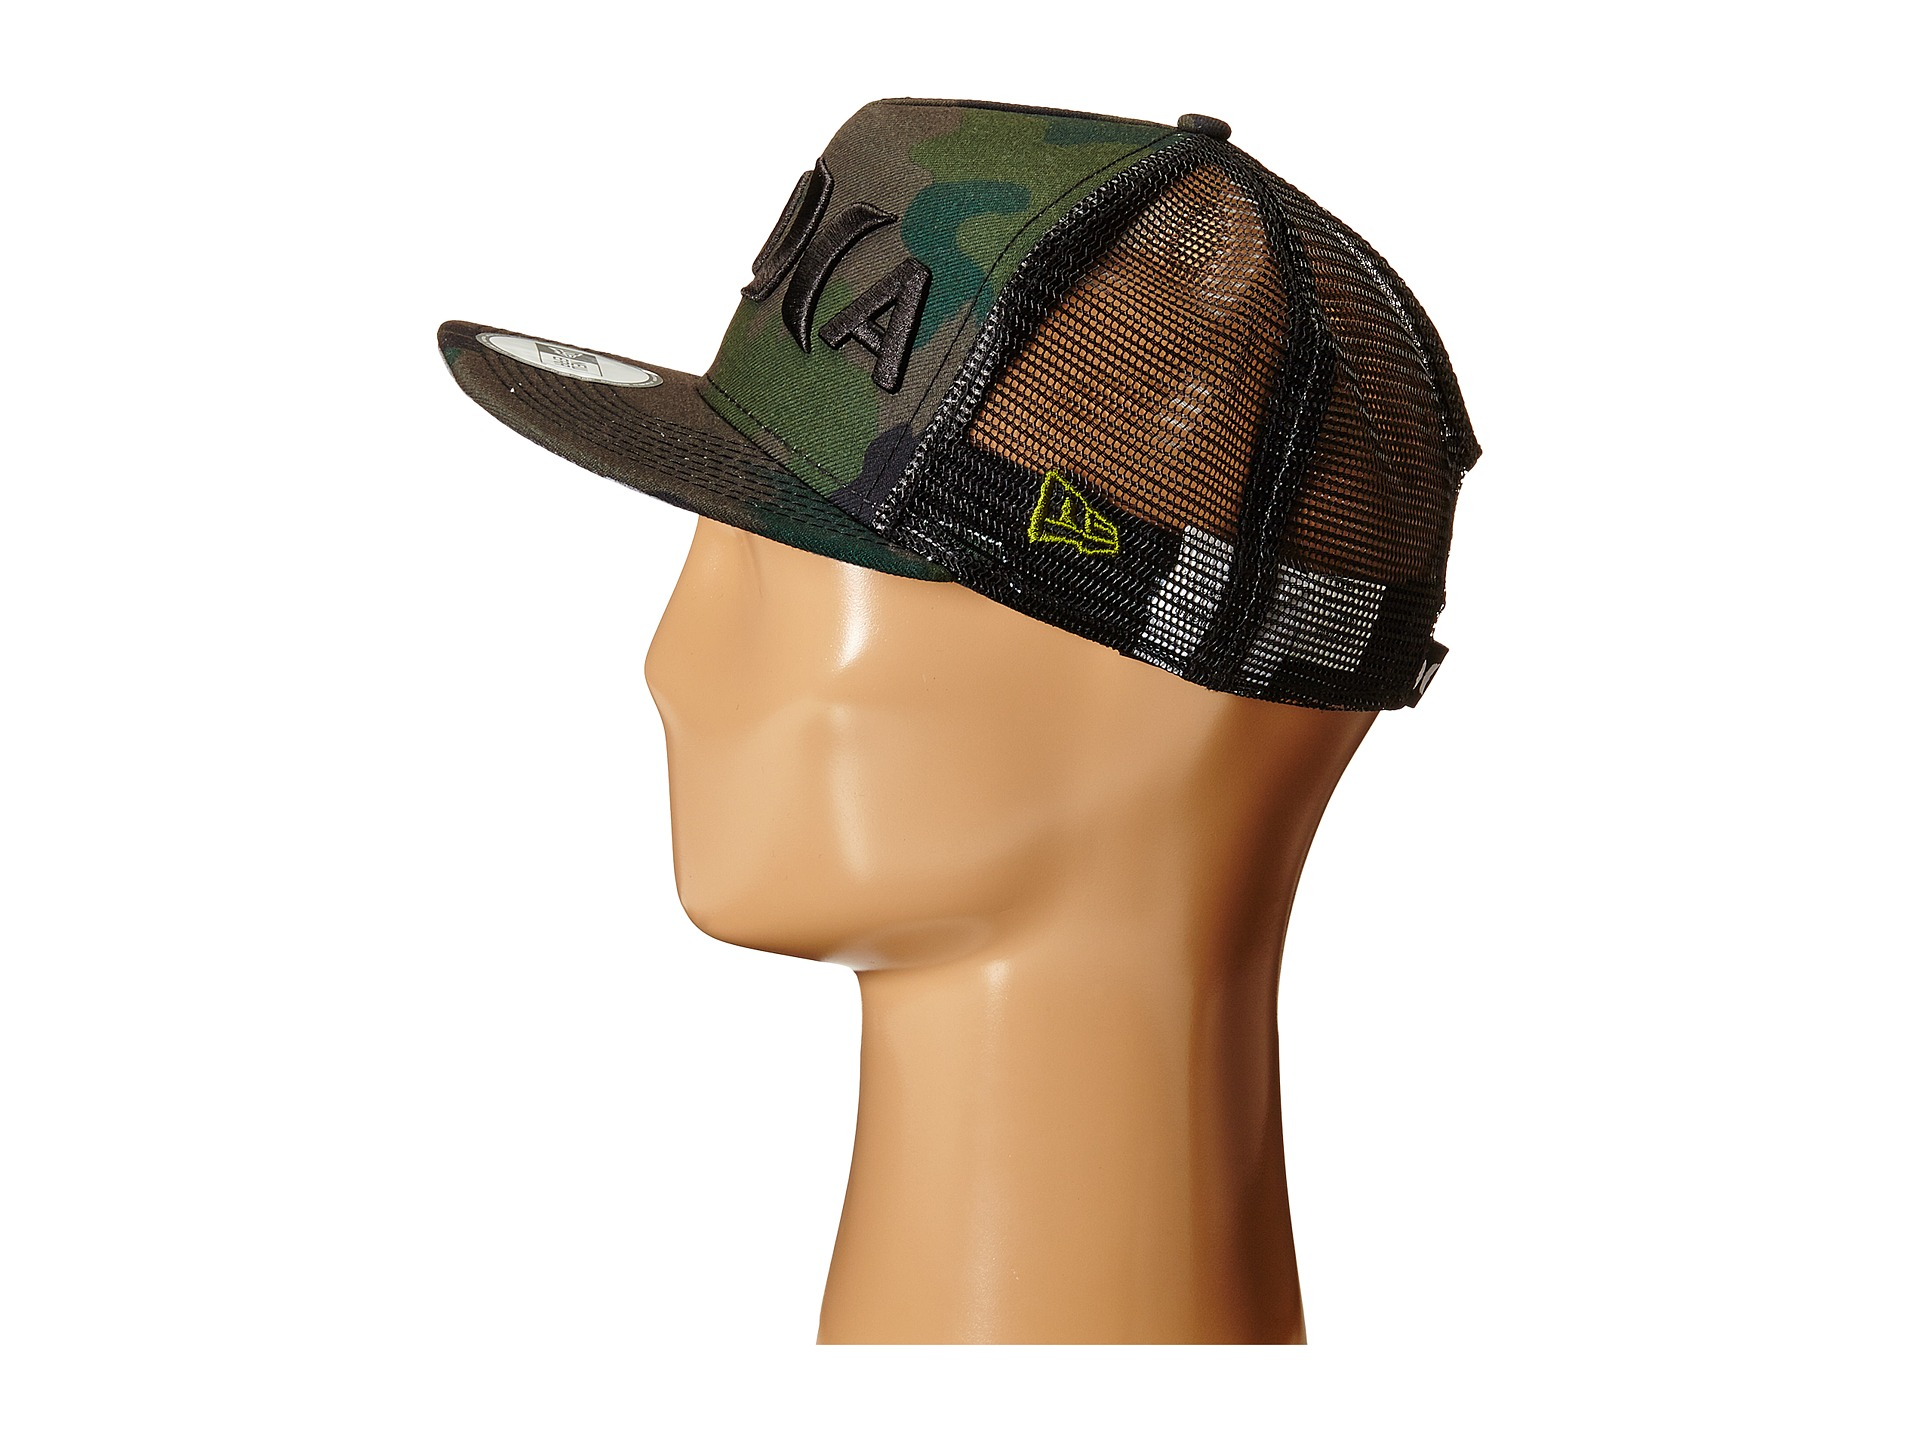 clearance lyst hurley jjf aloha hat in green for men 7e397 1a771 f8b061be69d1